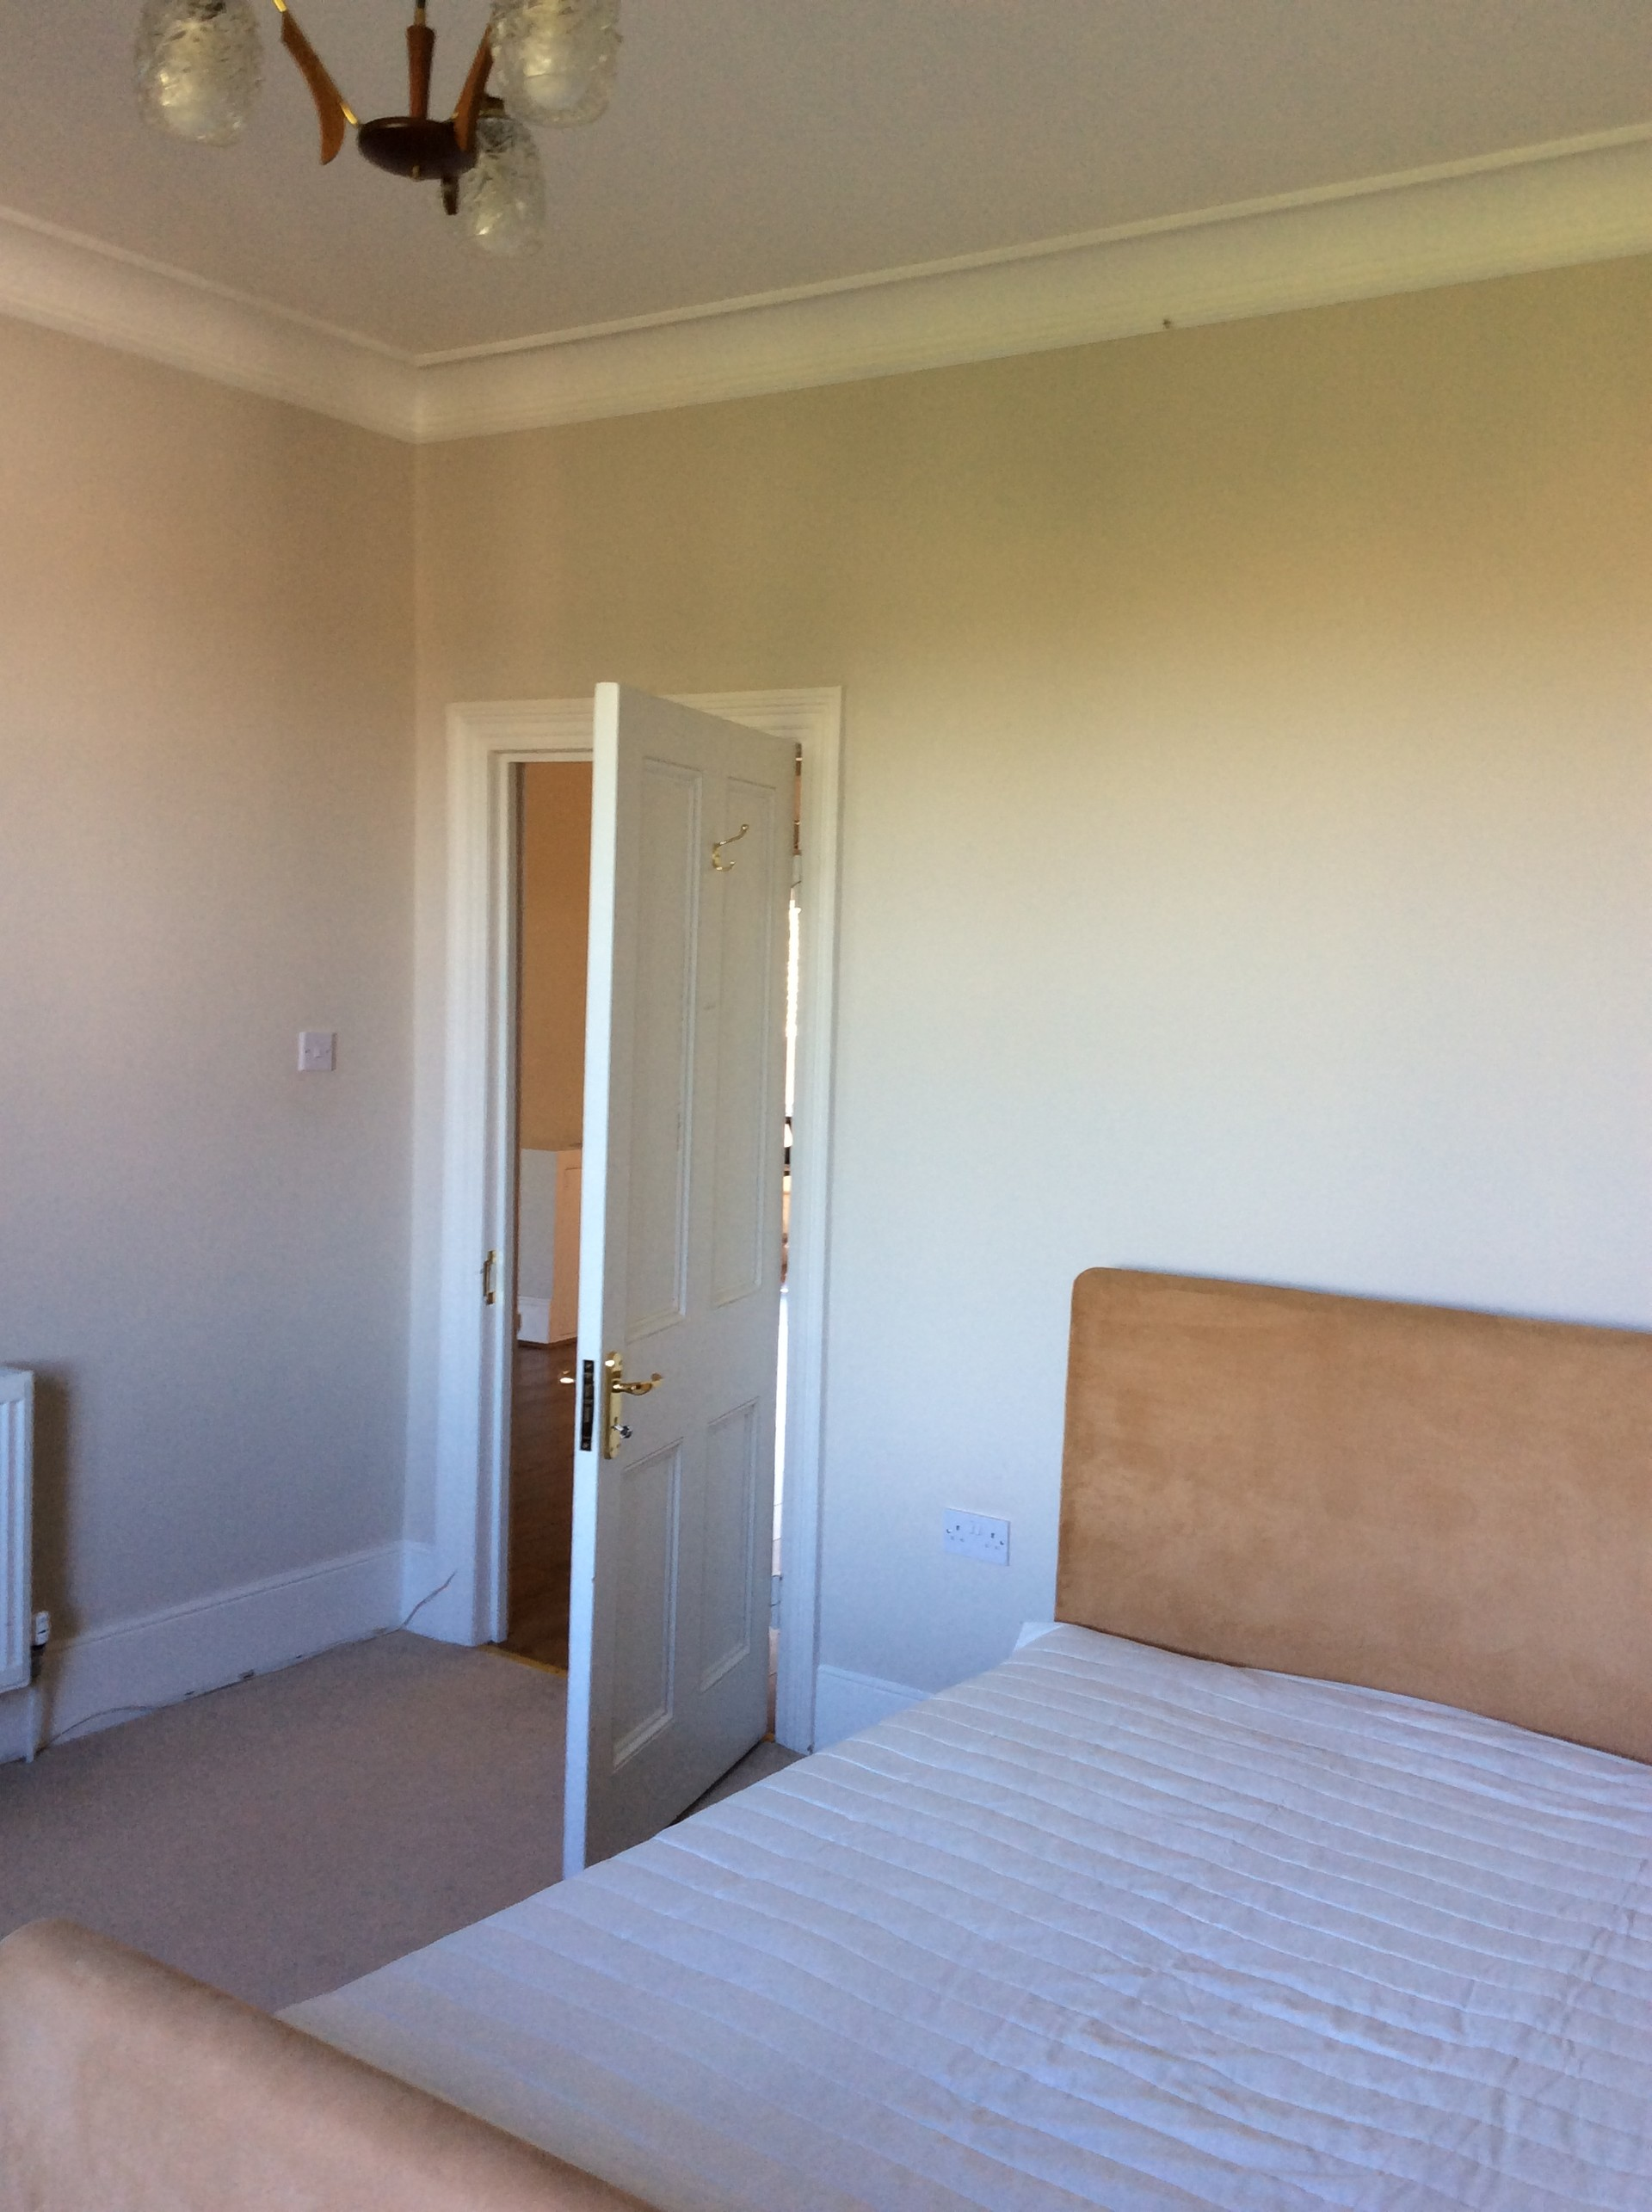 Rooms: 2 Large, Clean, Double Rooms In Spacious Clean Victorian